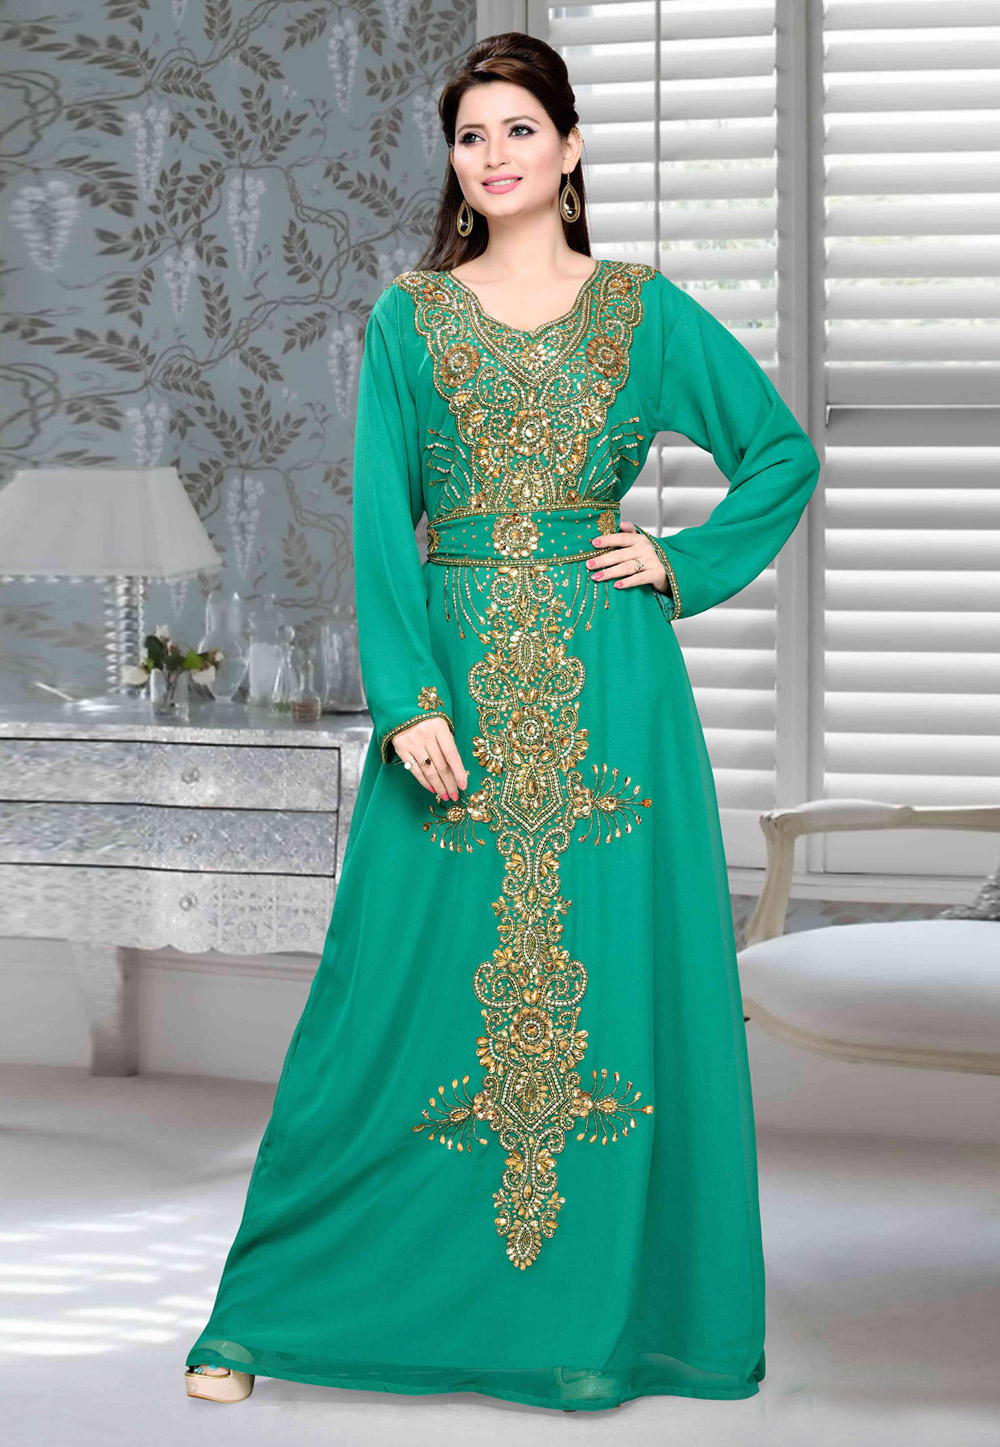 Green Faux Georgette Embroidered Readymade Kaftan 194709